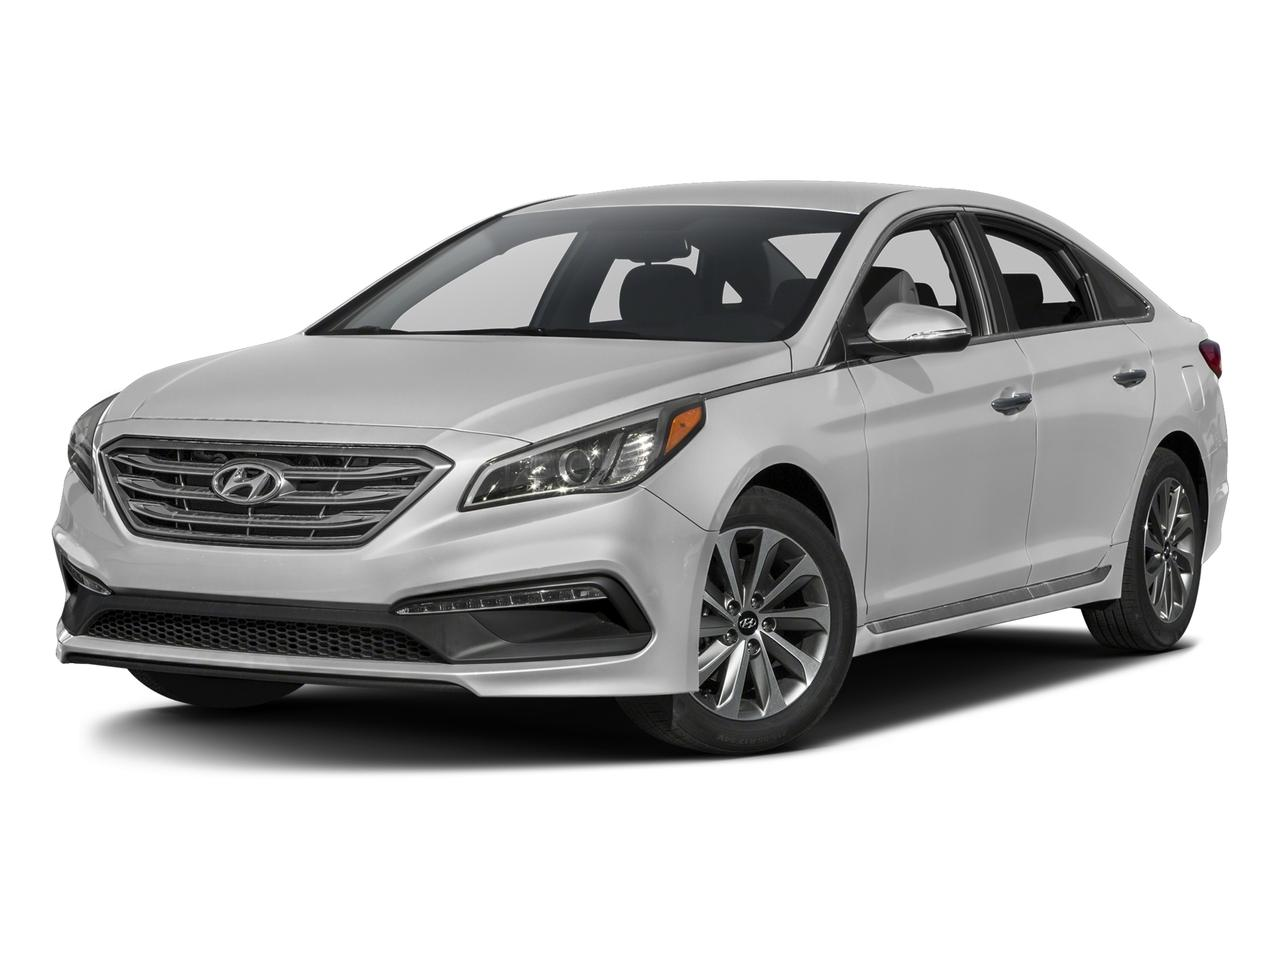 2017 Hyundai Sonata Vehicle Photo in Bowie, MD 20716